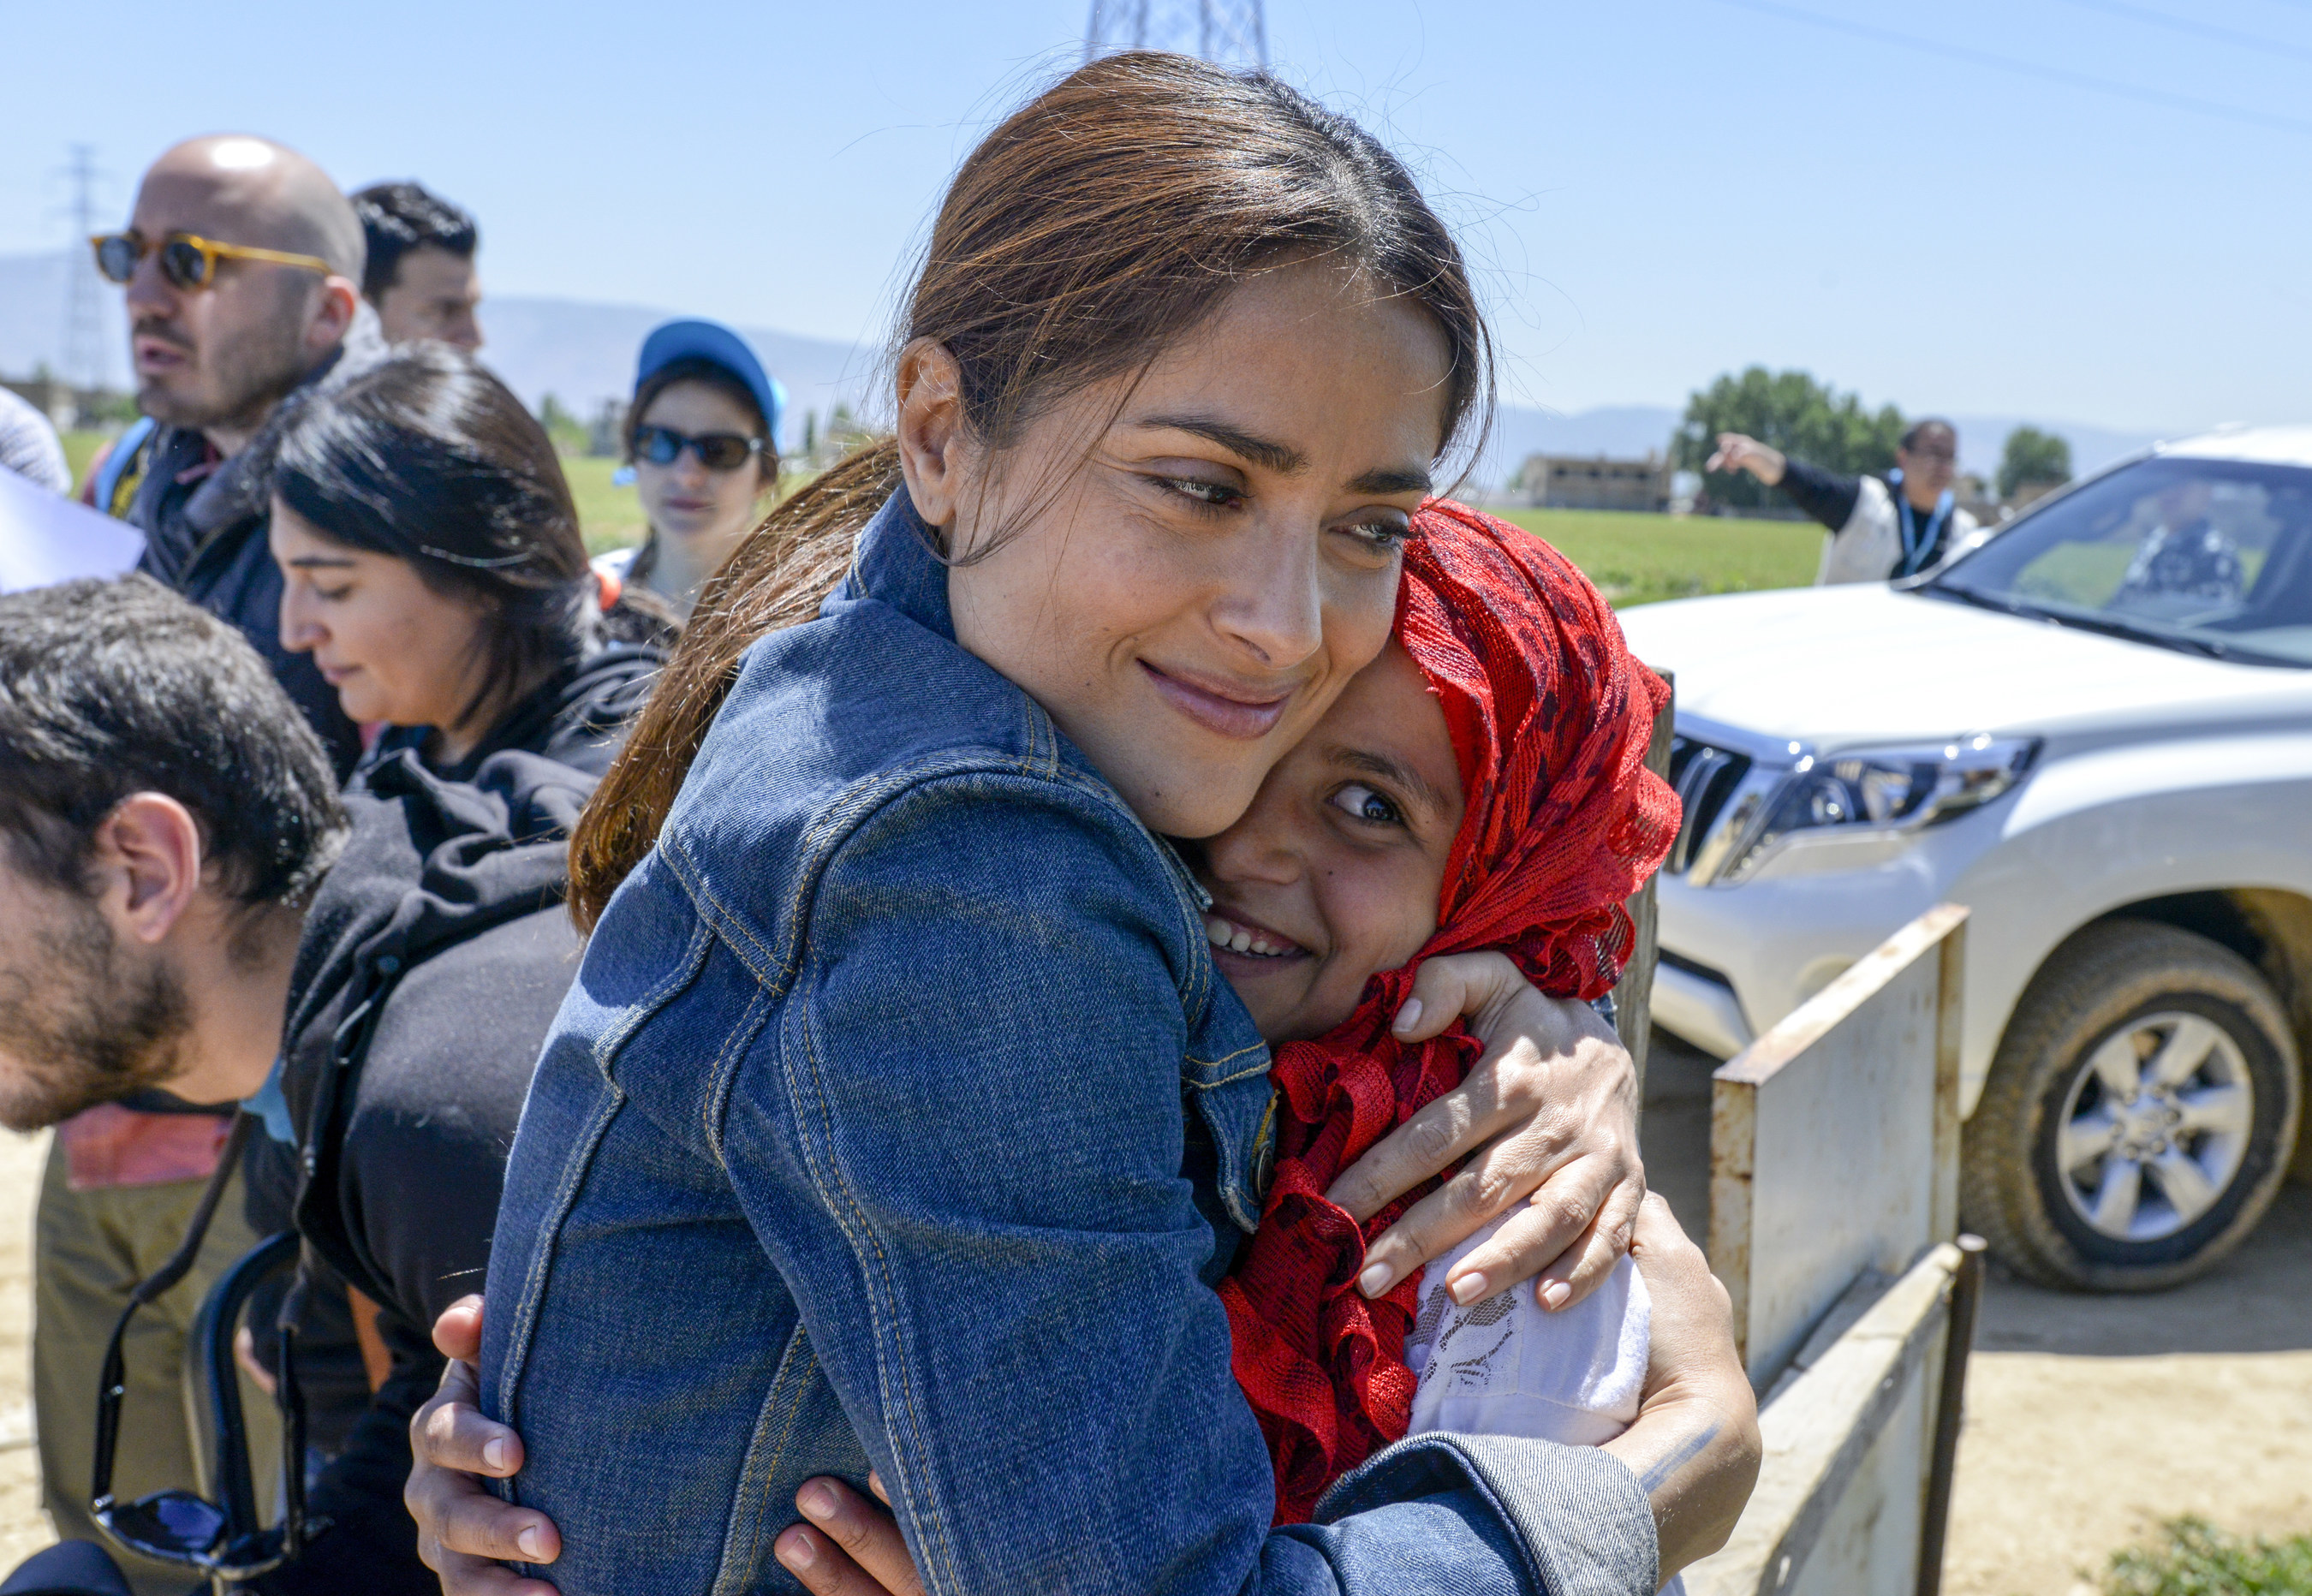 UNICEF supporter and CHIME FOR CHANGE campaign Co-Founder Salma Hayek visited Syrian refugees in Lebanon with UNICEF on April 25 to draw attention to the urgent humanitarian needs of children whose lives have been upended by the conflict in Syria. Hayek helped launch CHIME for the Children of Syria, a fundraising appeal to support children and families affected by the crisis. Founded by Gucci, a longtime UNICEF partner, CHIME FOR CHANGE is a global campaign to raise funds and awareness...